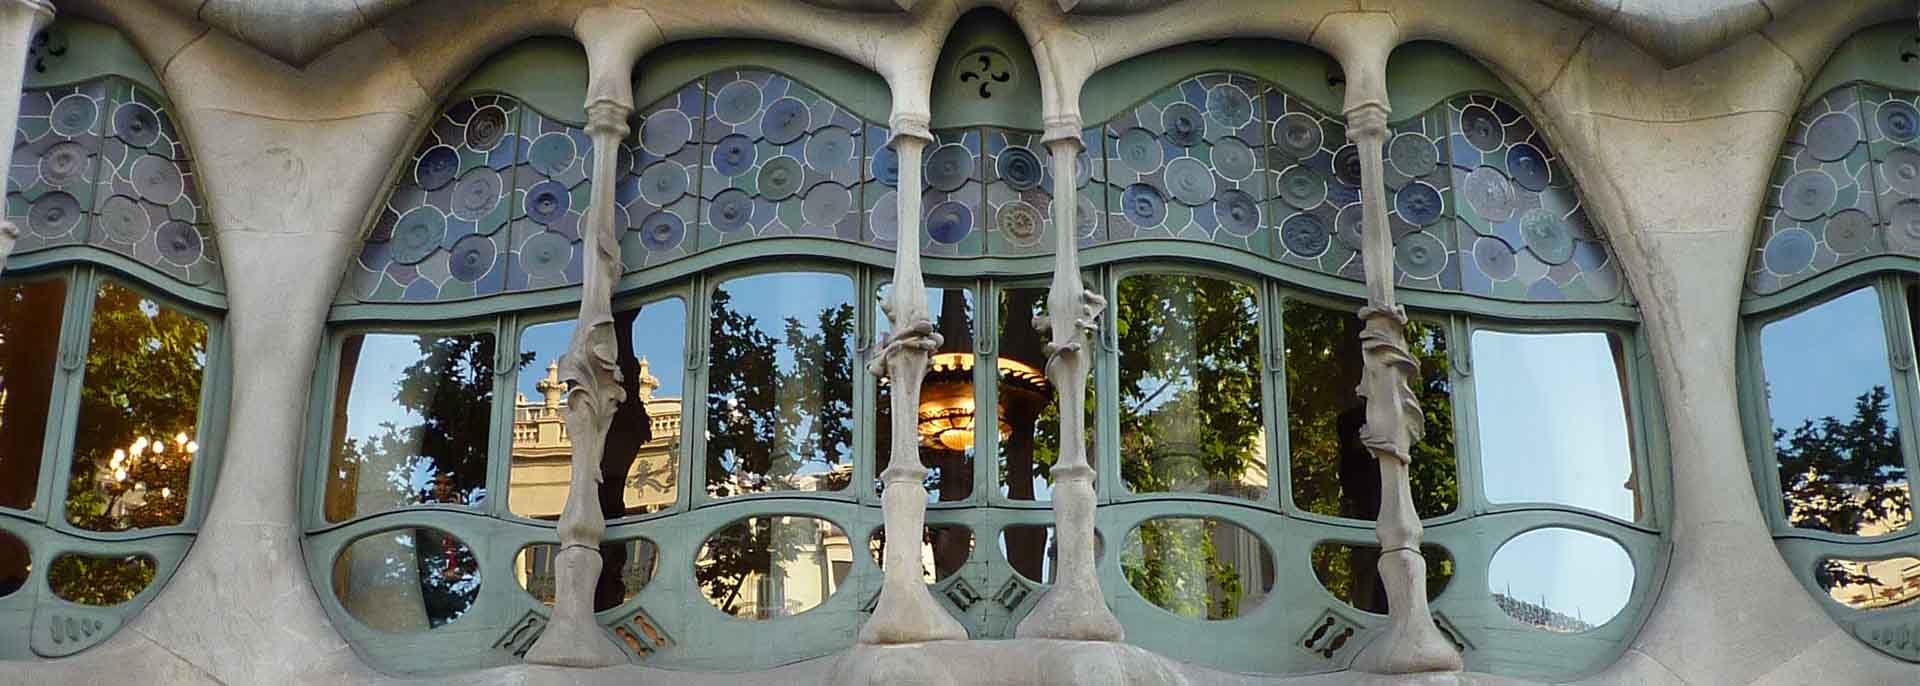 Gaudi's gorgeous creations